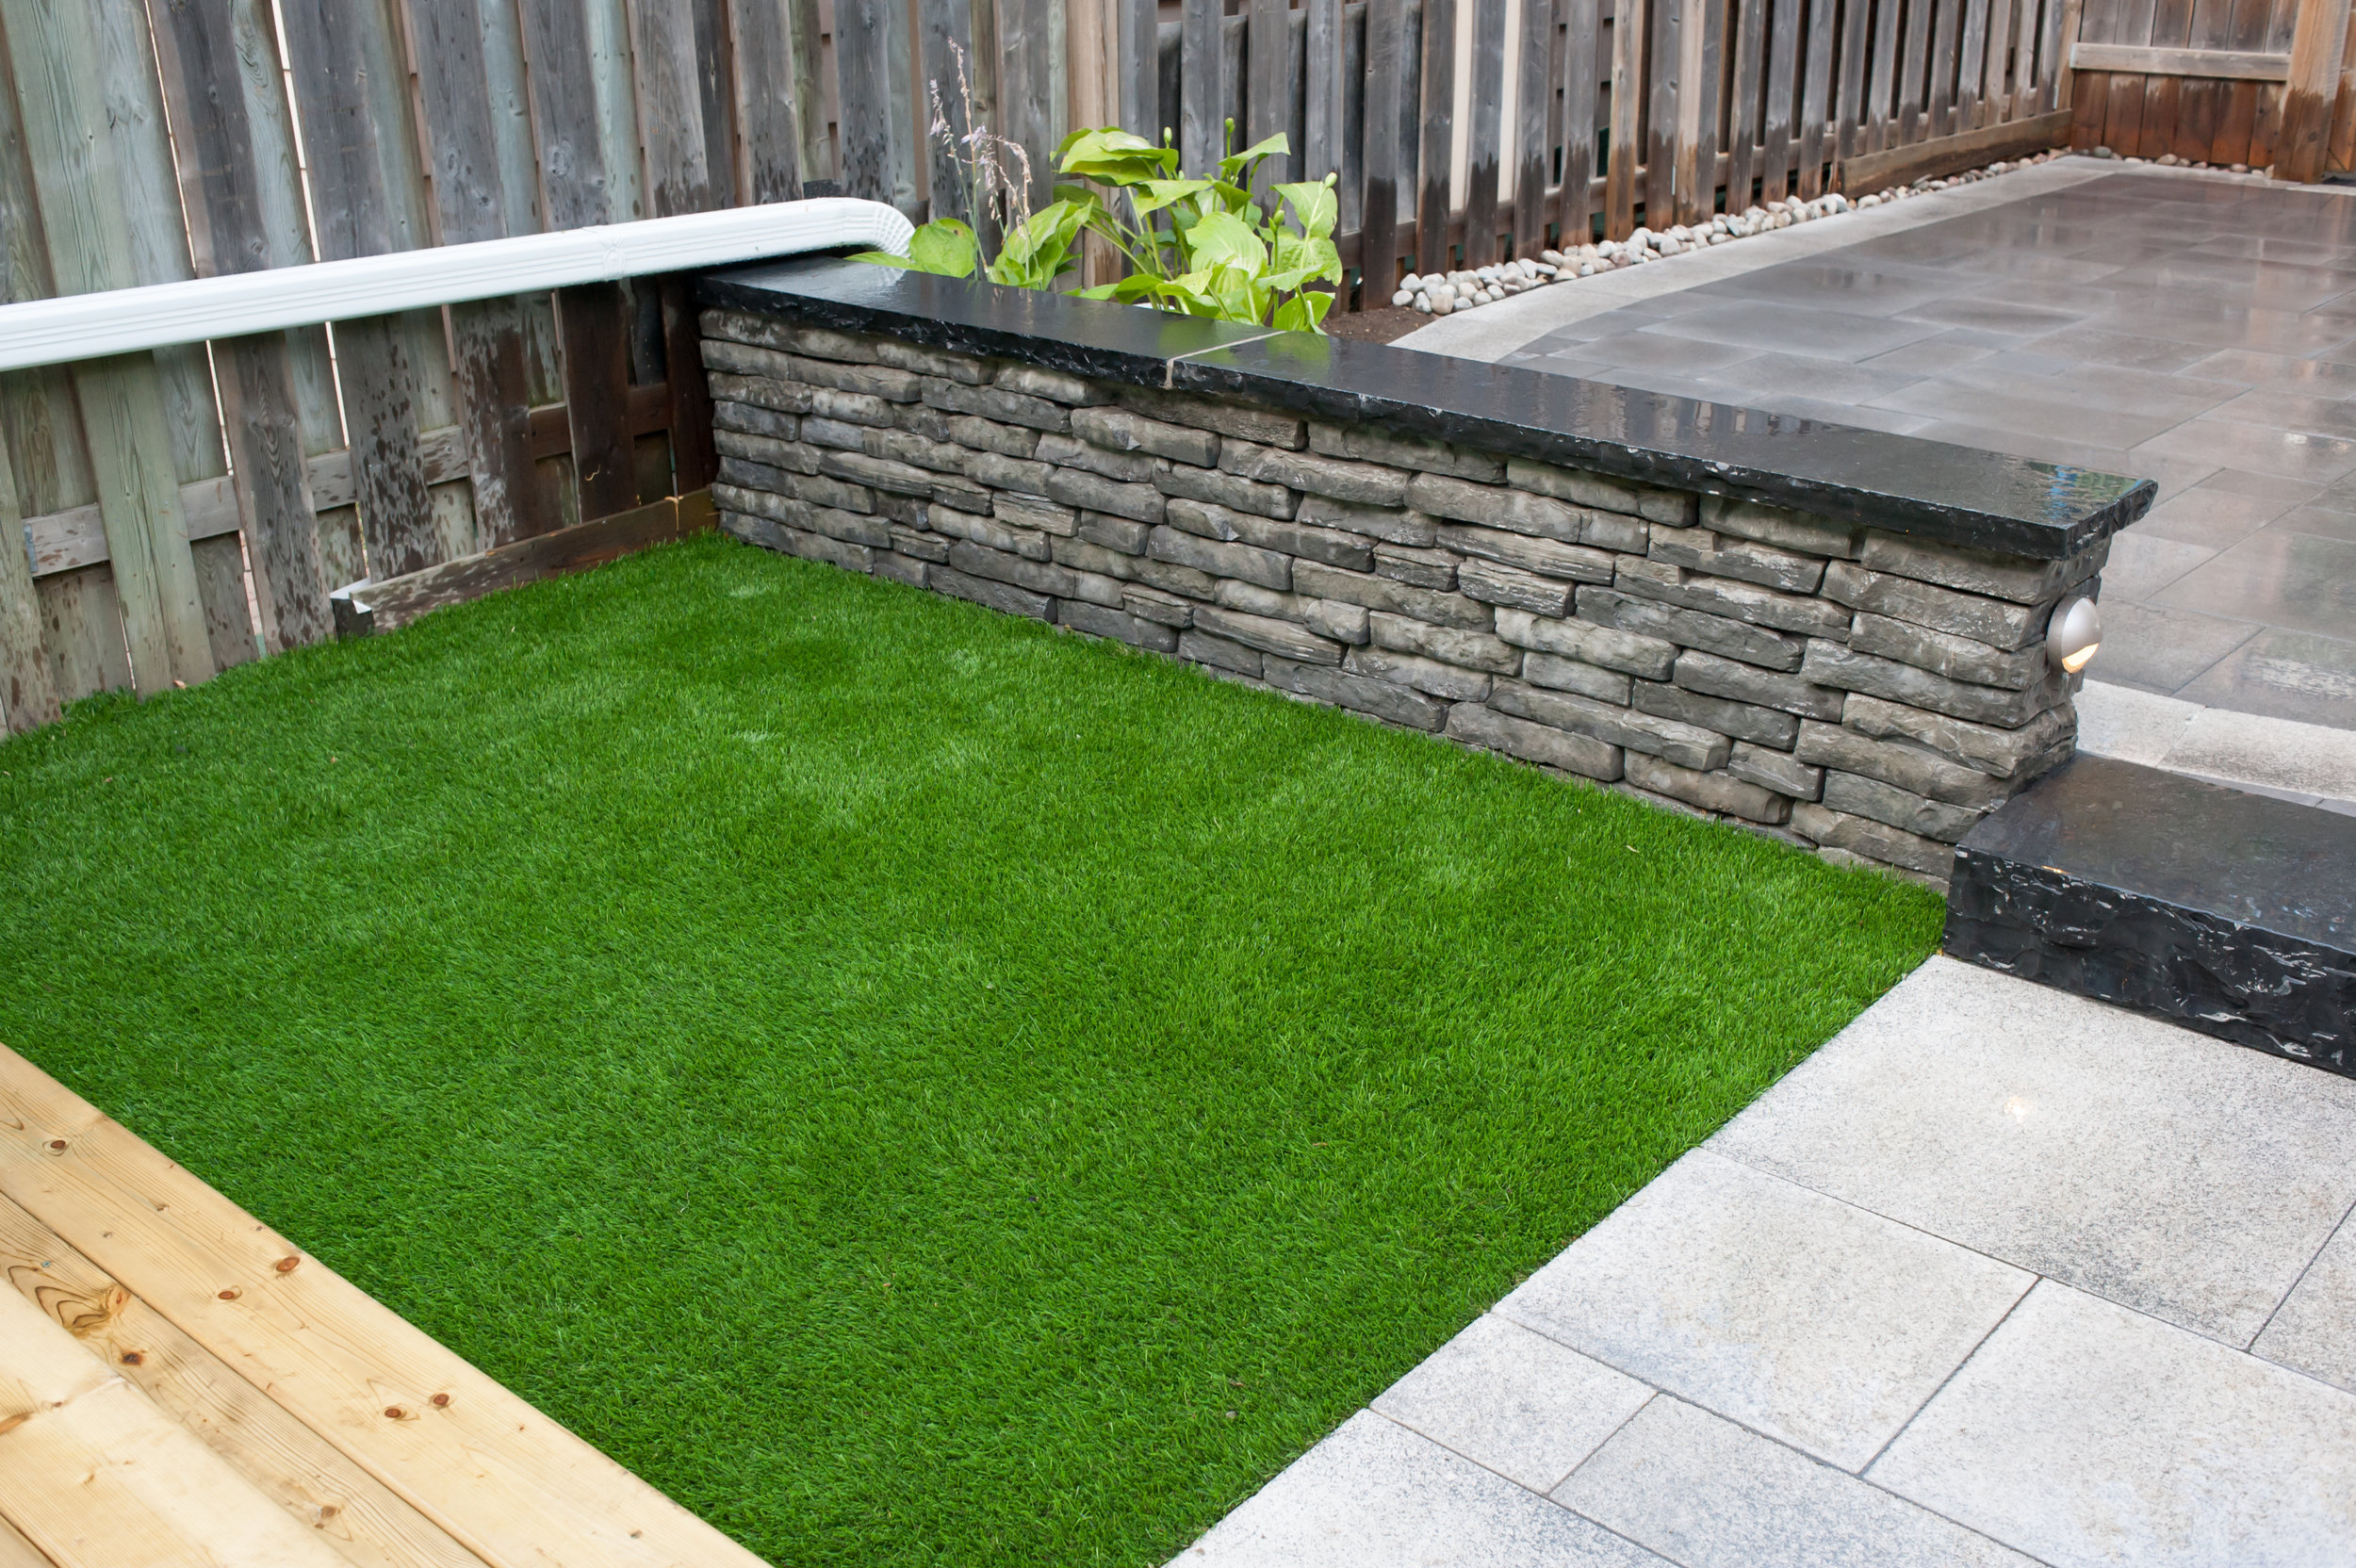 Completed Project - Synthetic Turf